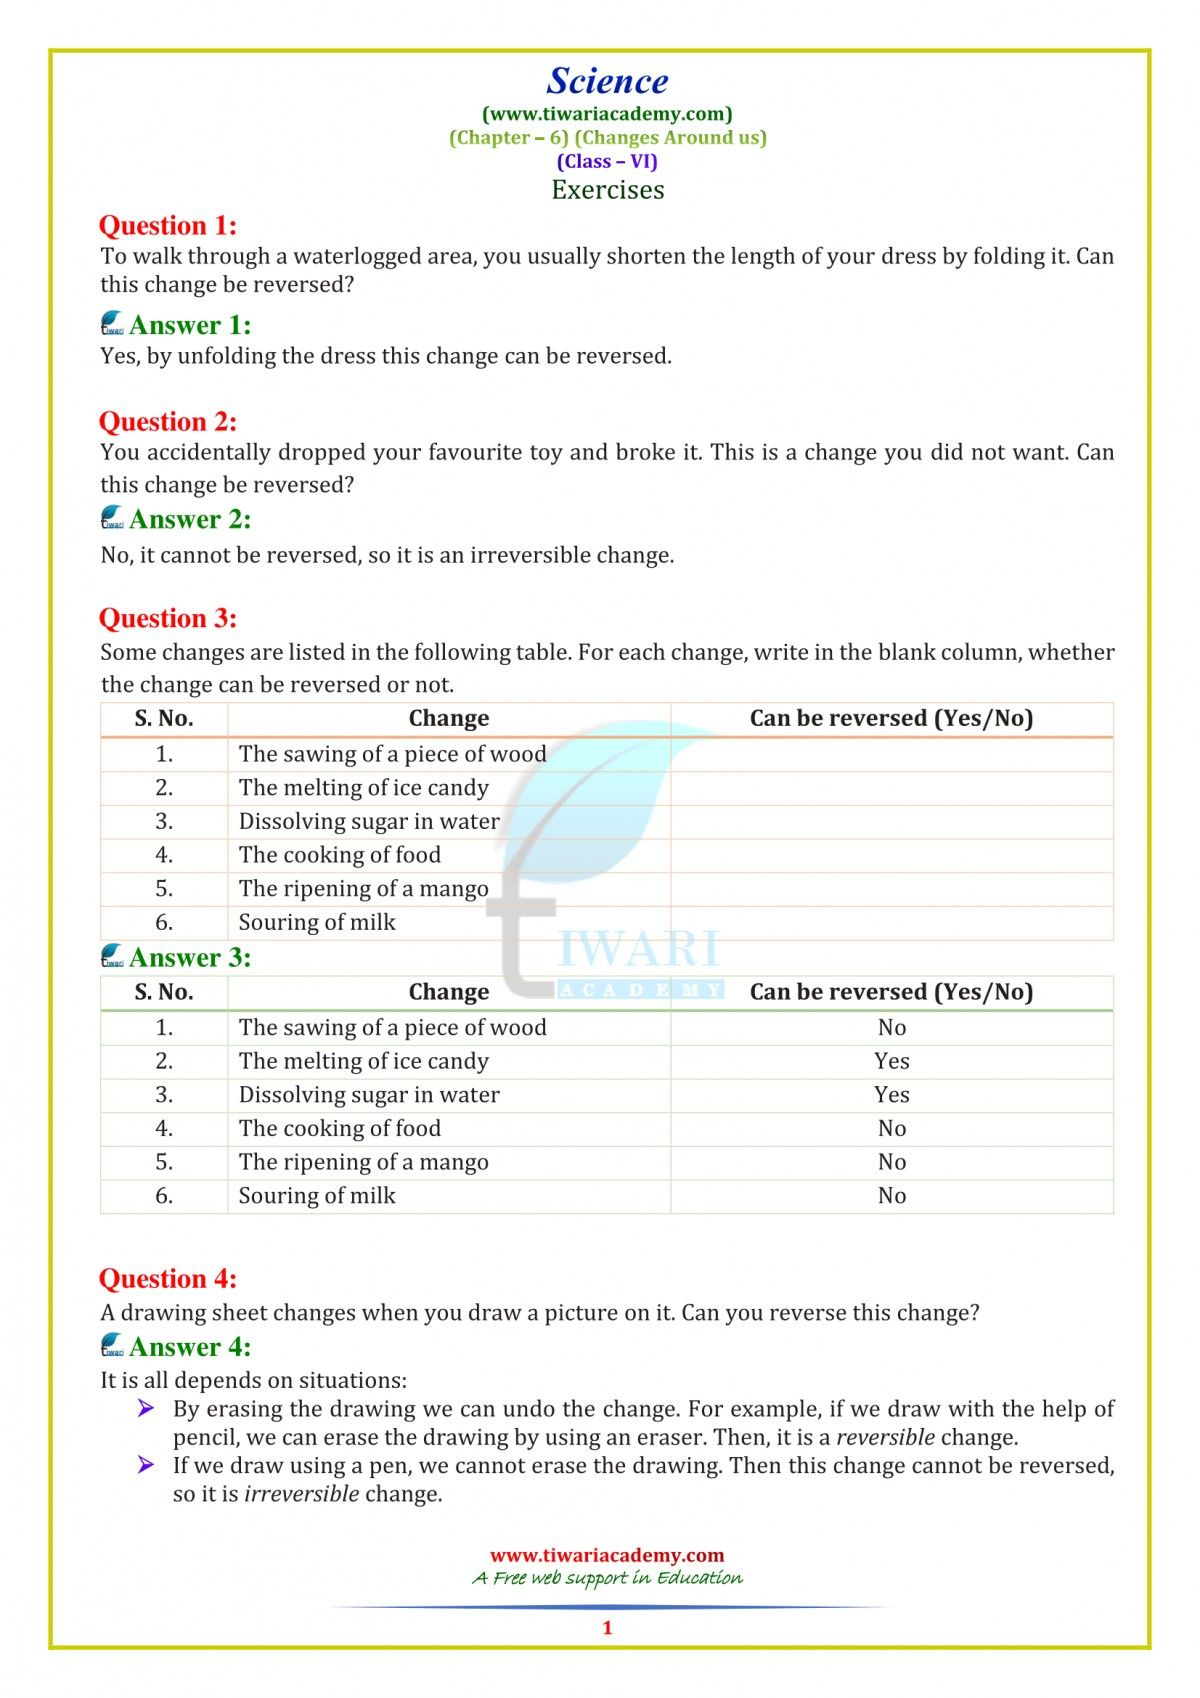 Https Www Tiwariacademy Com Ncert Solutions Class 6 Science Chapter 6 Science This Or That Questions Solutions [ 1698 x 1200 Pixel ]